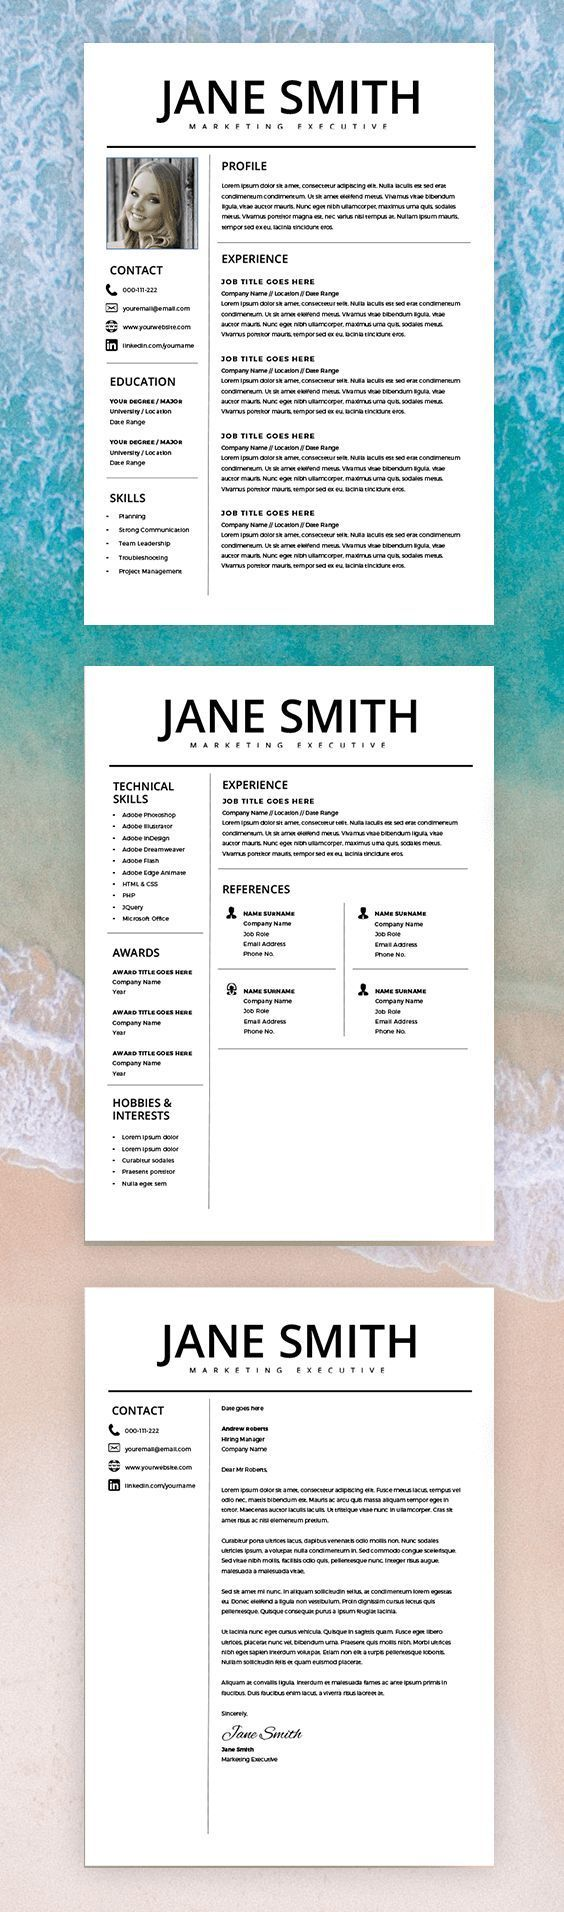 Professional Resume Template - MS Word Compatible - Best CV ...